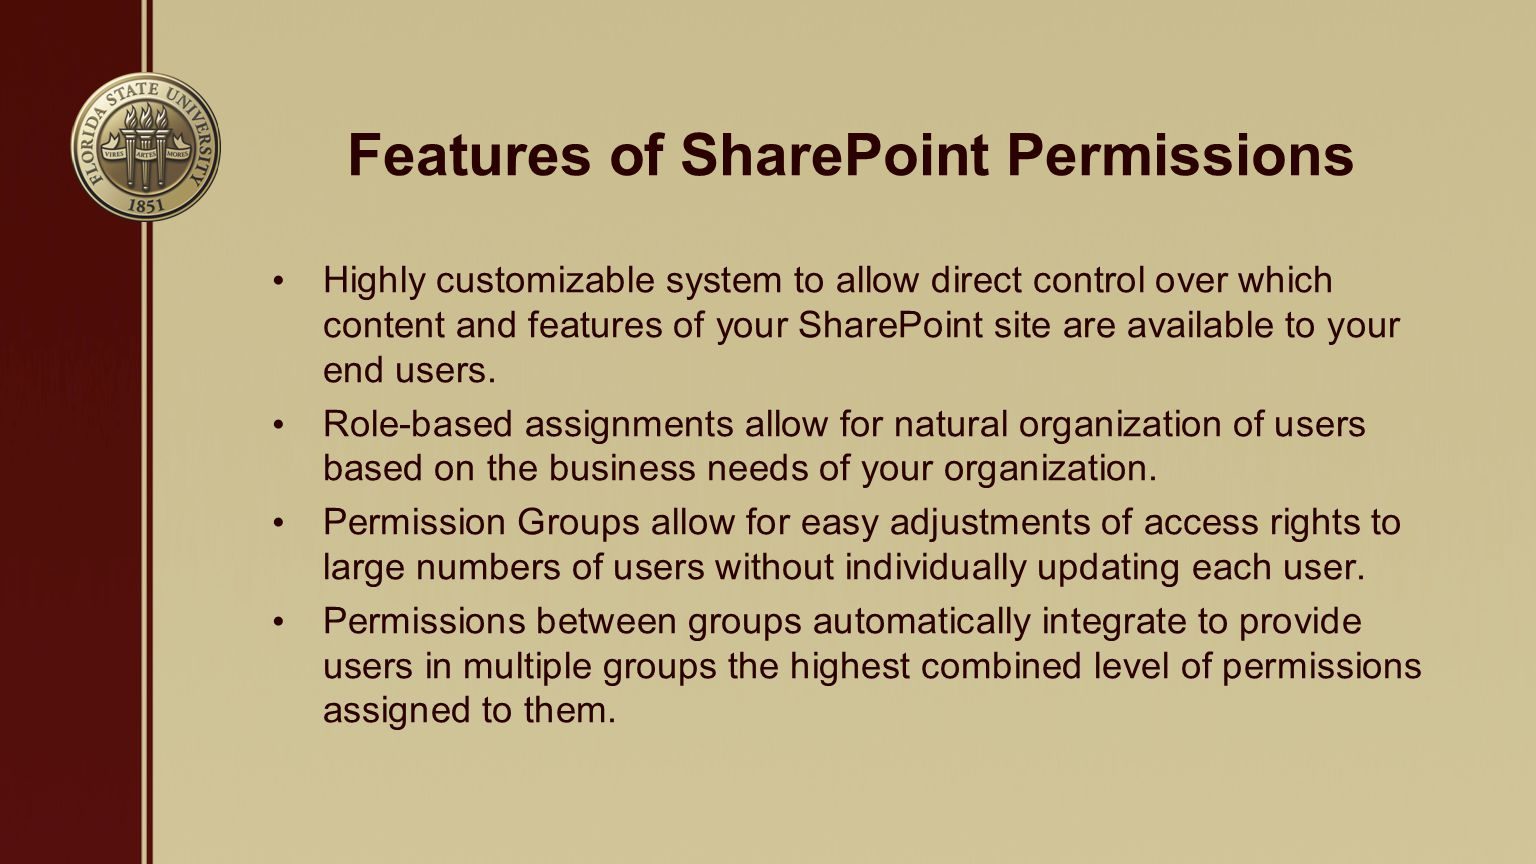 Features of SharePoint Permissions Highly customizable system to allow direct control over which content and features of your SharePoint site are available to your end users.